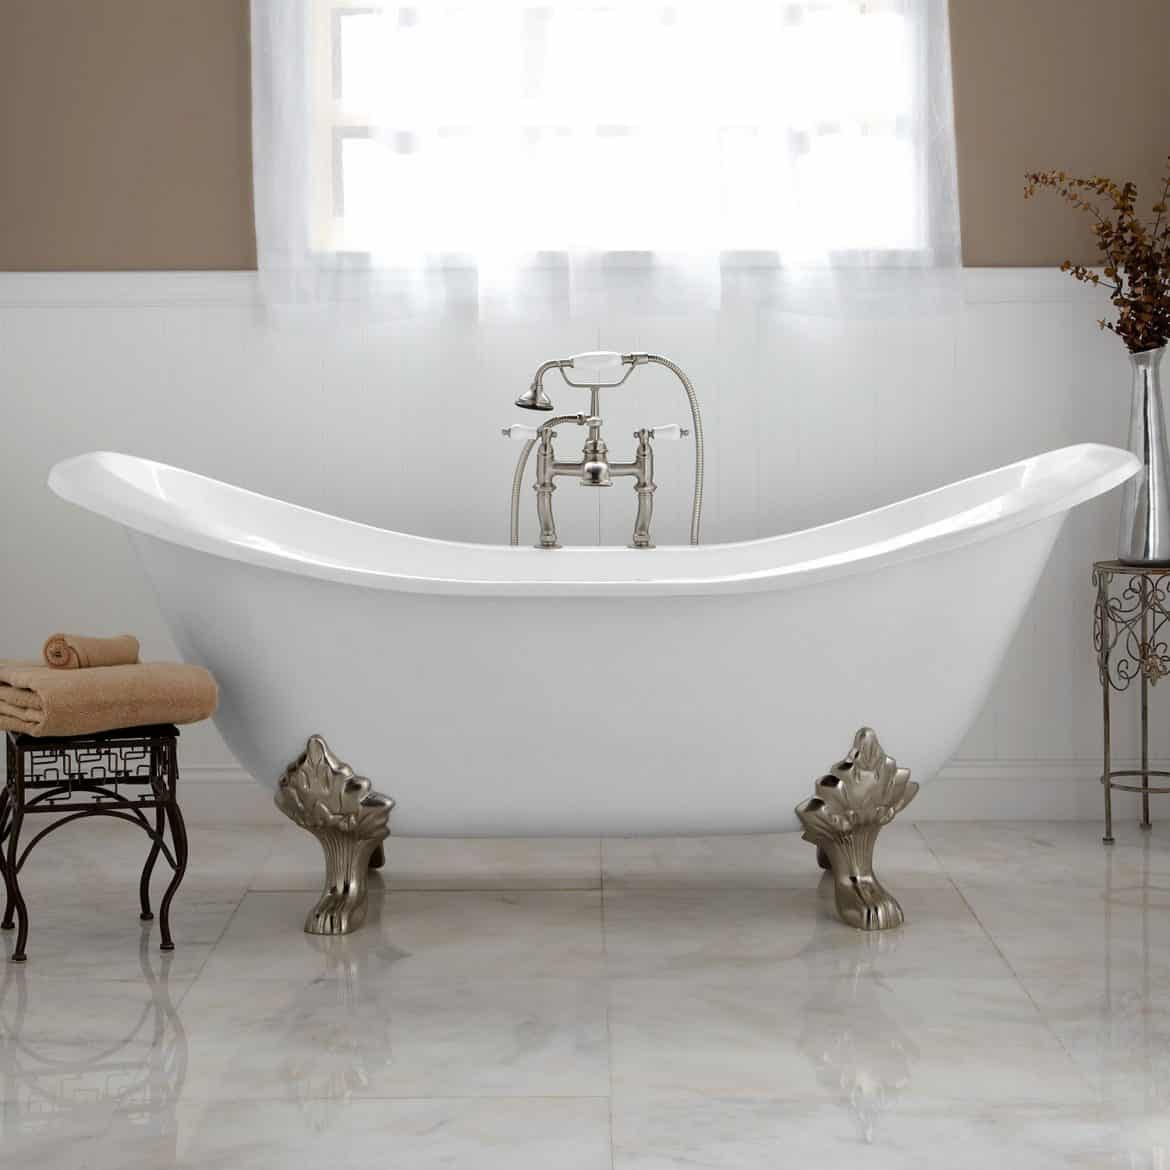 Kohler Clawfoot Tub Feet